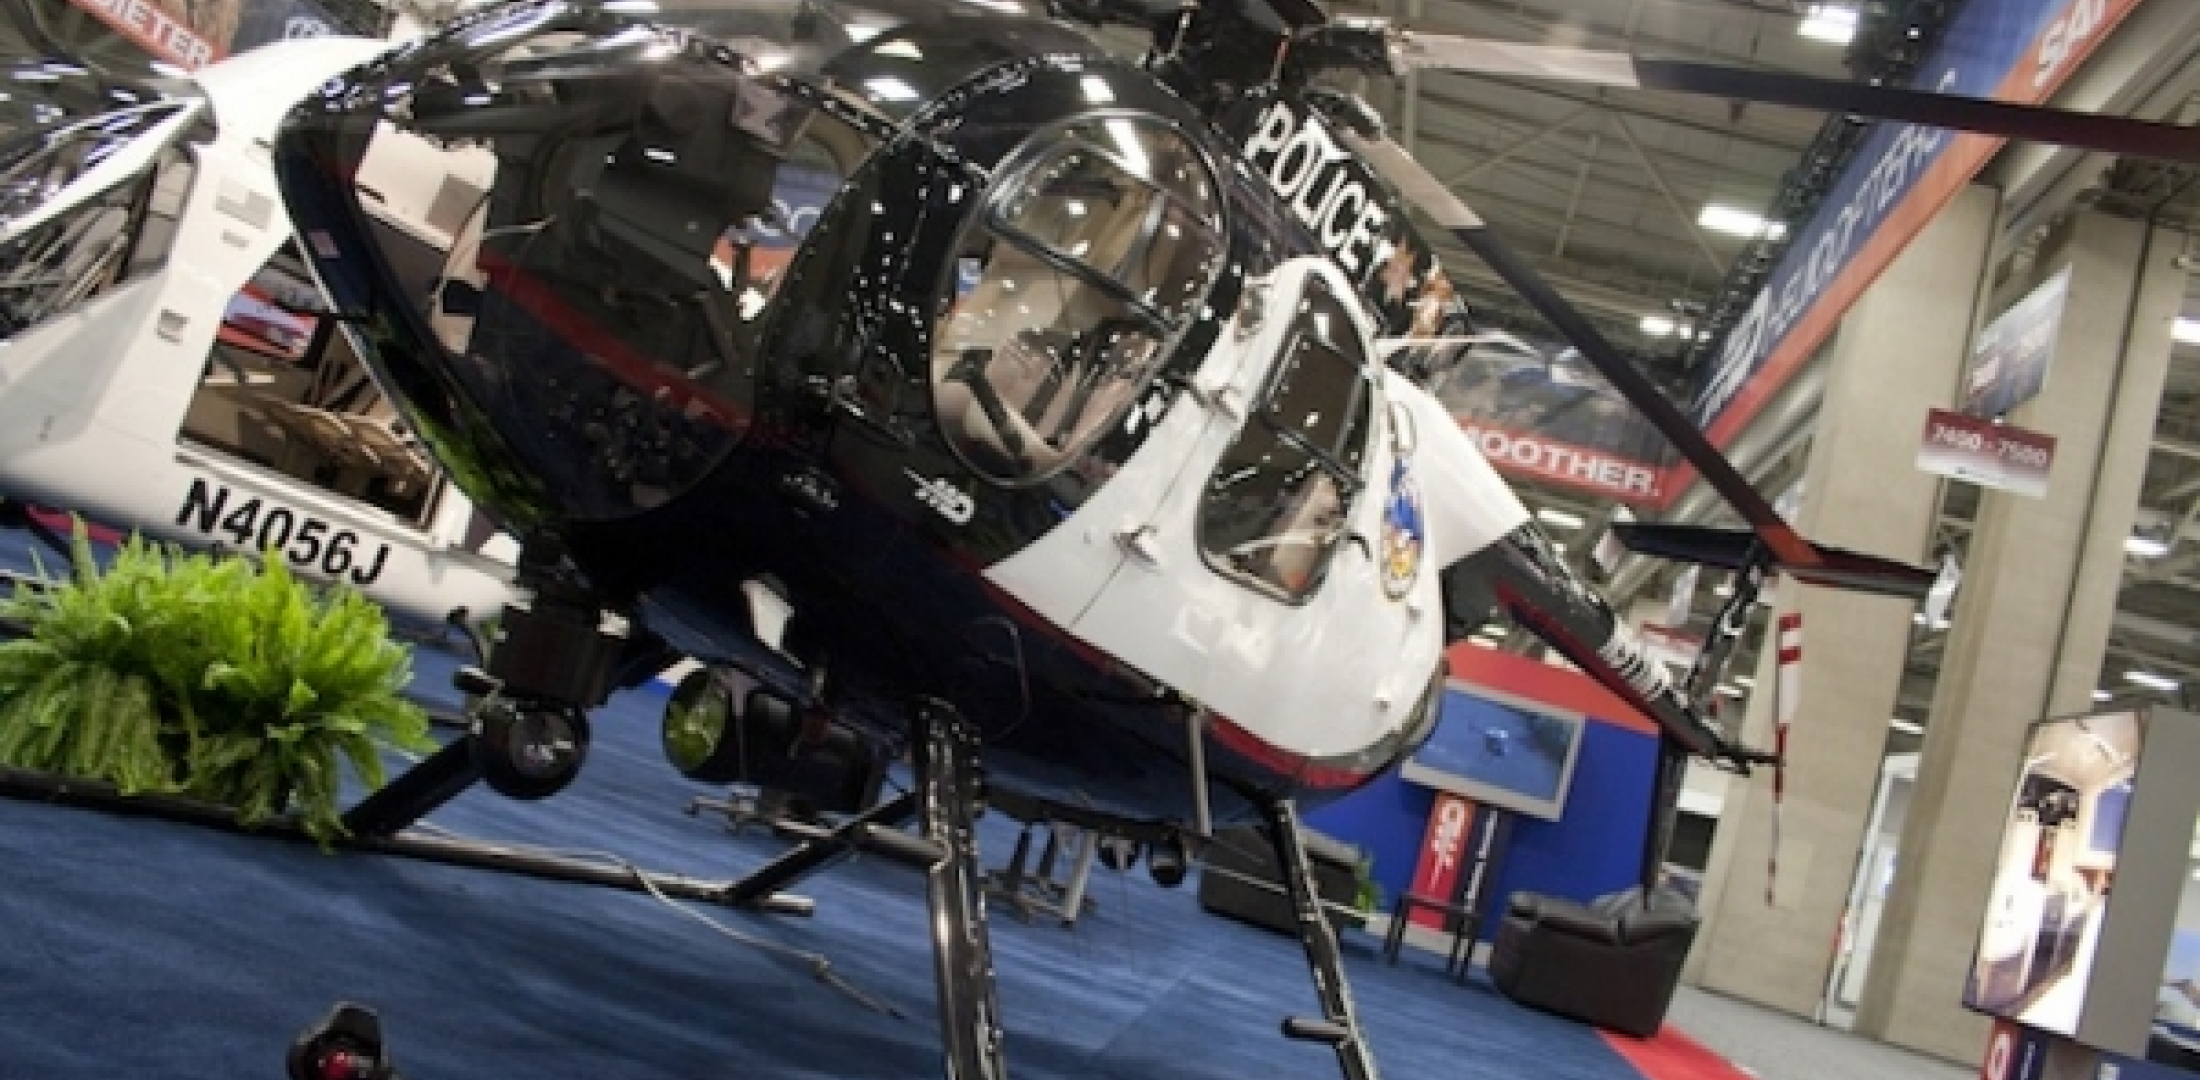 MD Helicopters  369 on display at their booth. (Photo Andrew Zaback)